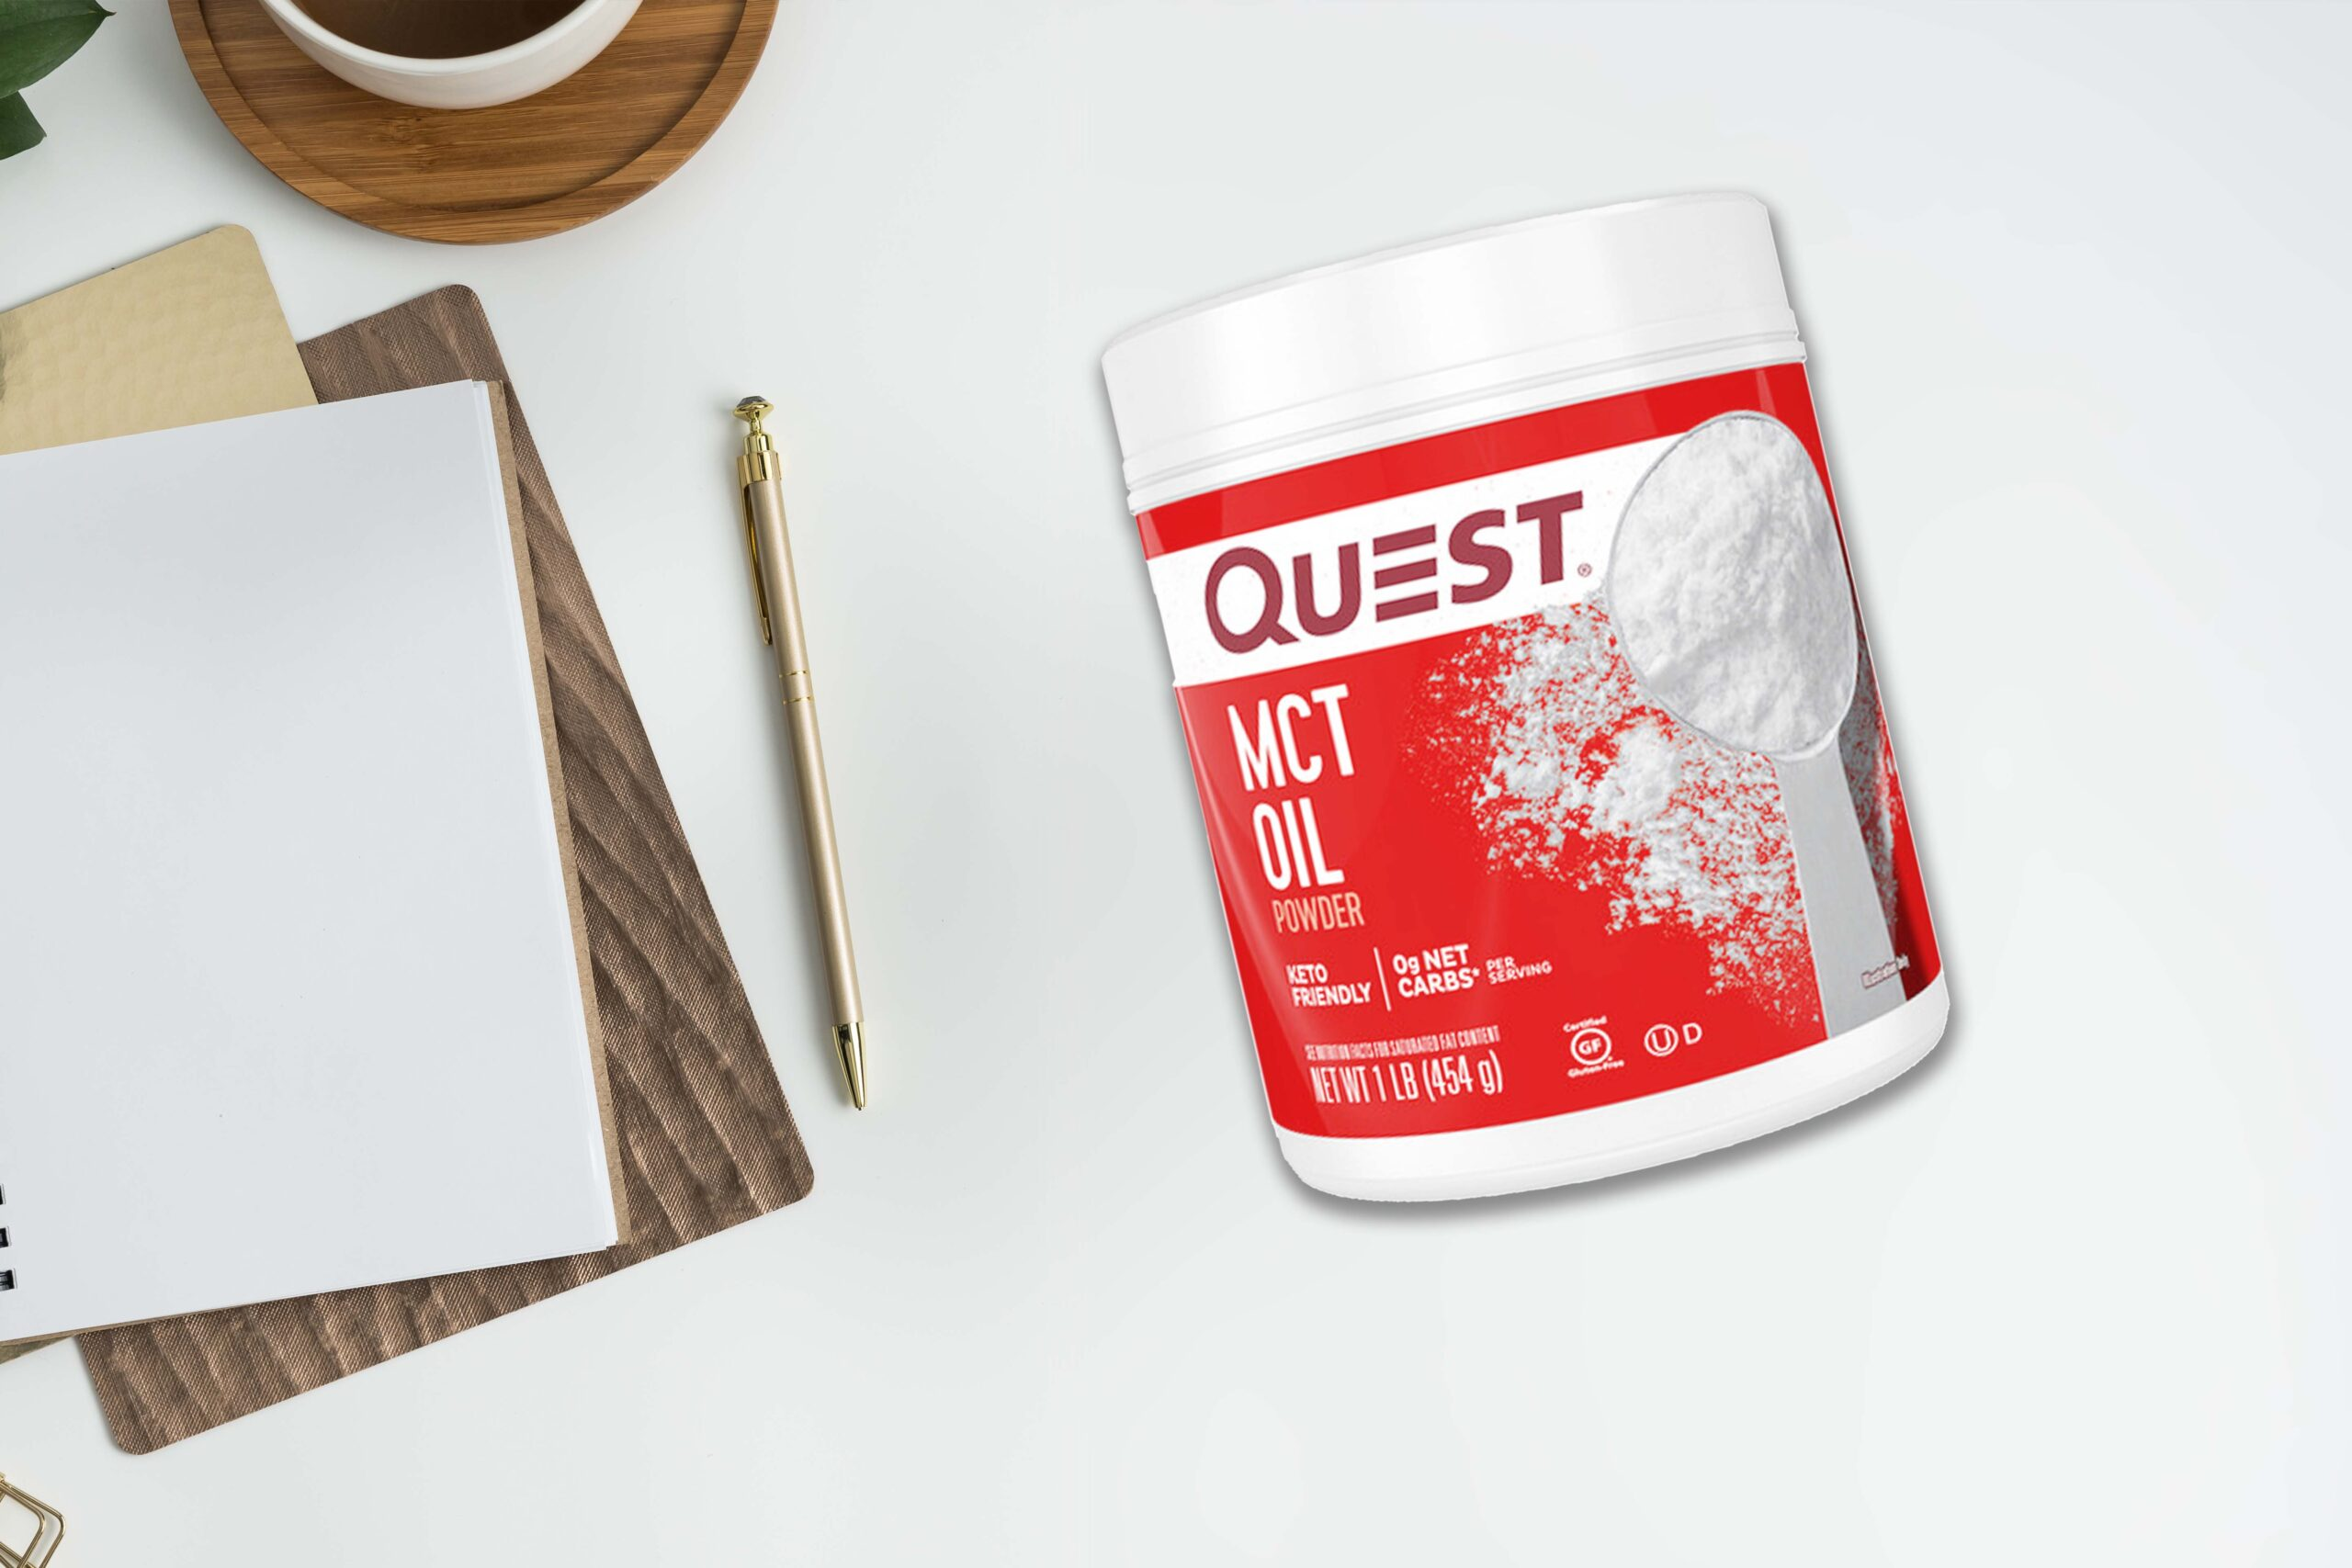 Quest Mct Oil